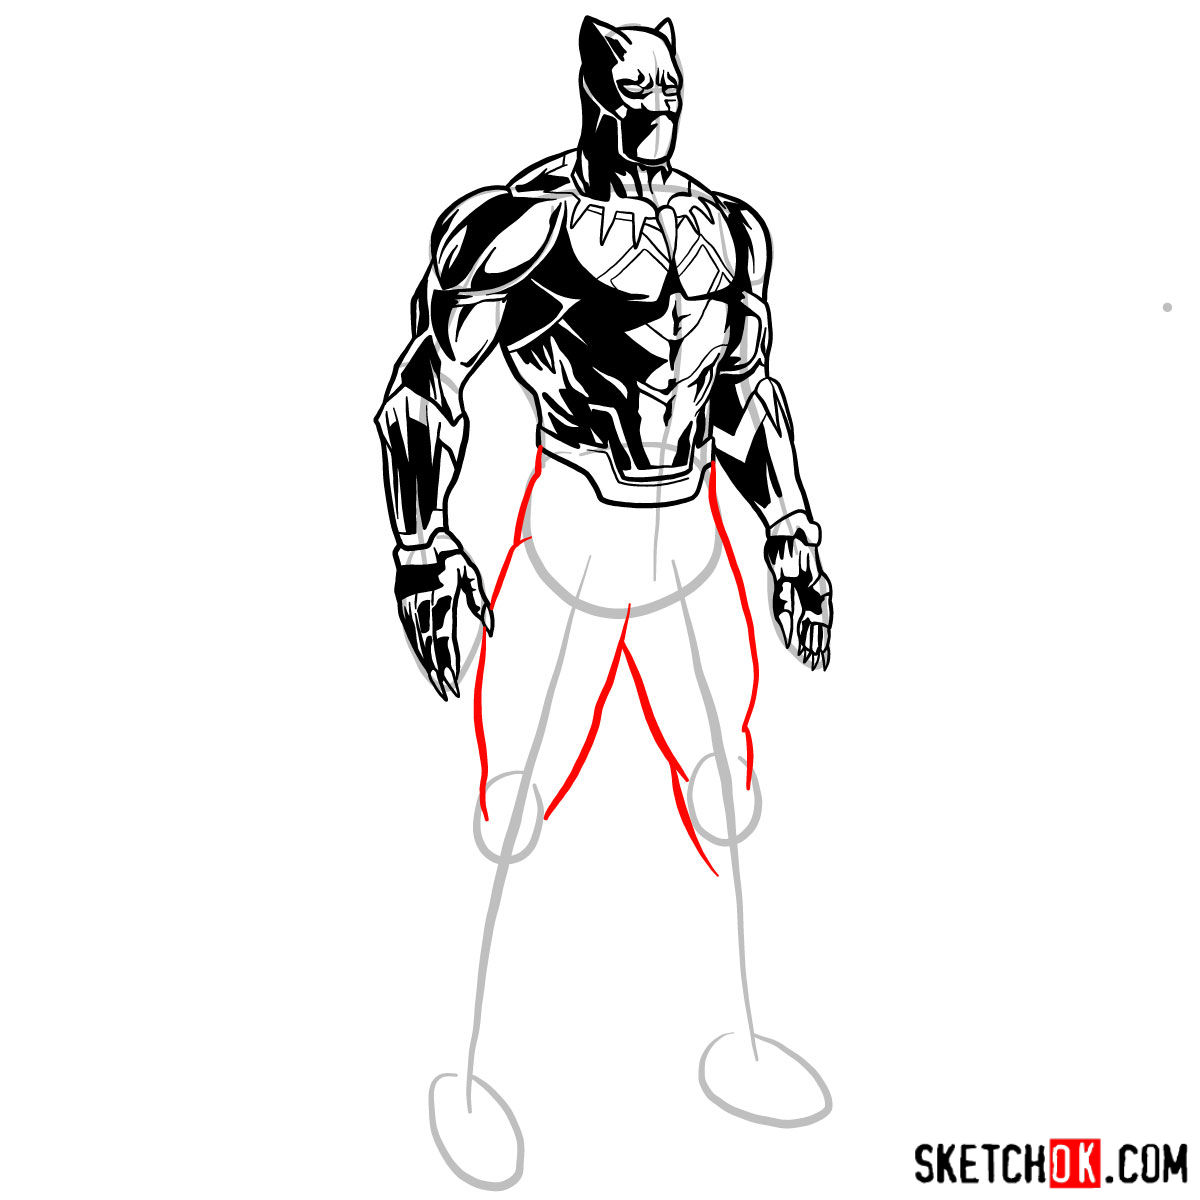 How to draw Black Panther from Marvel - step 13